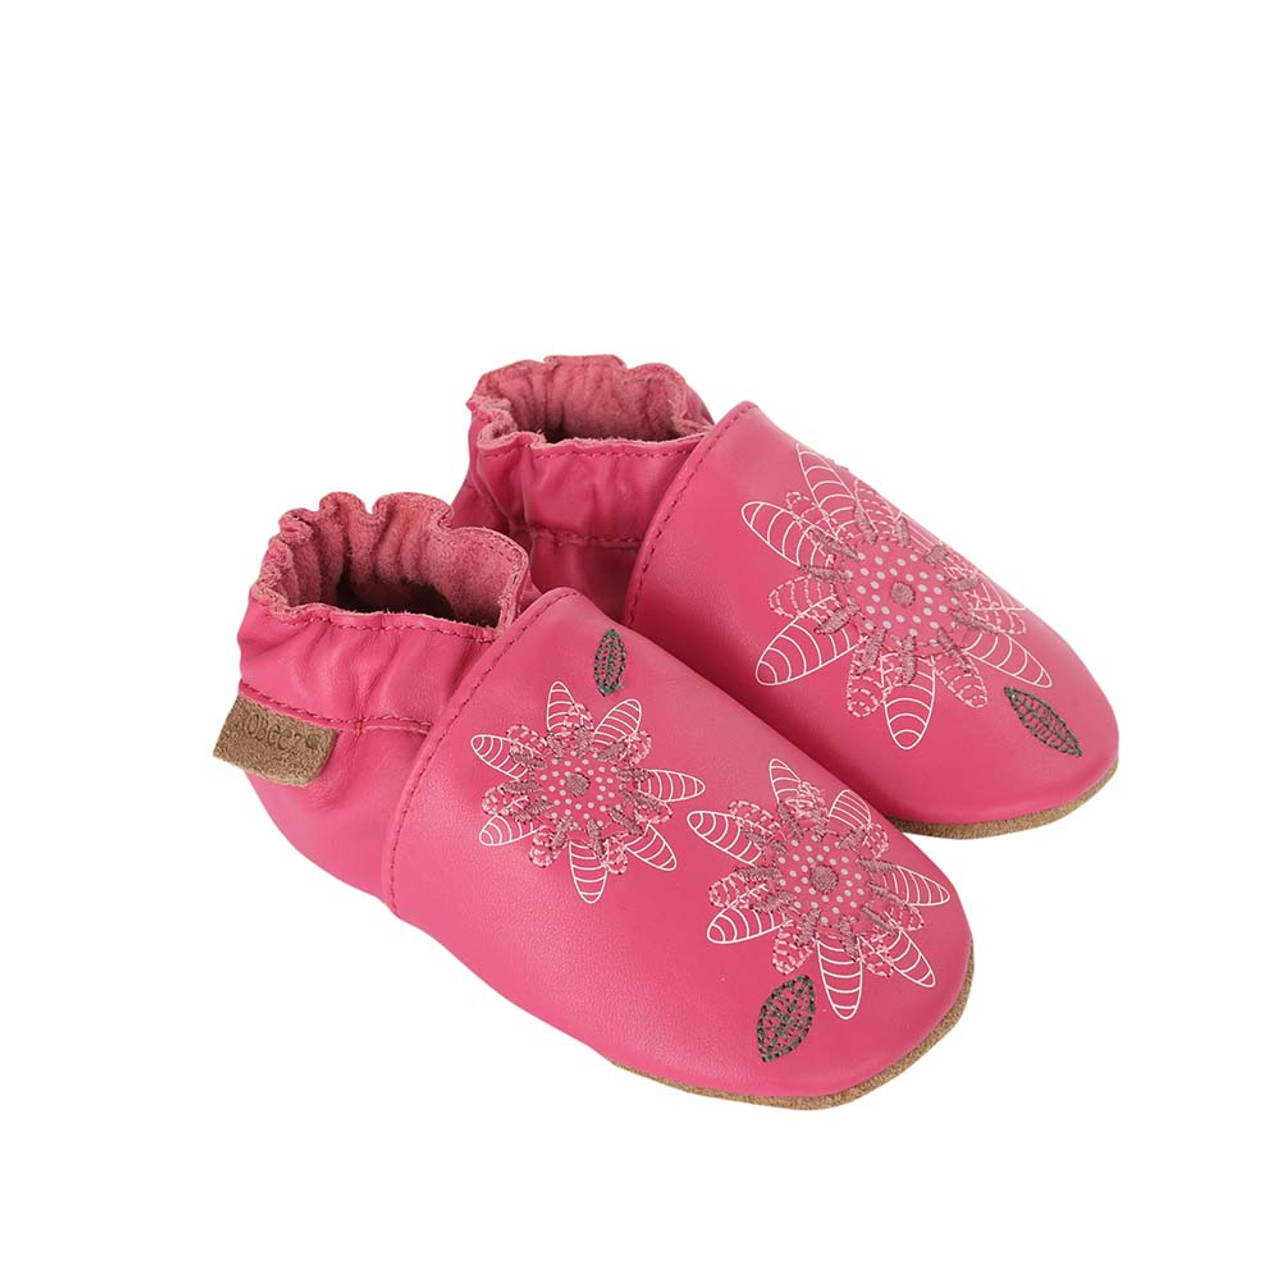 Baby Shoes Fiona Flower Soft Soles Girls 0 2 Years Robeez